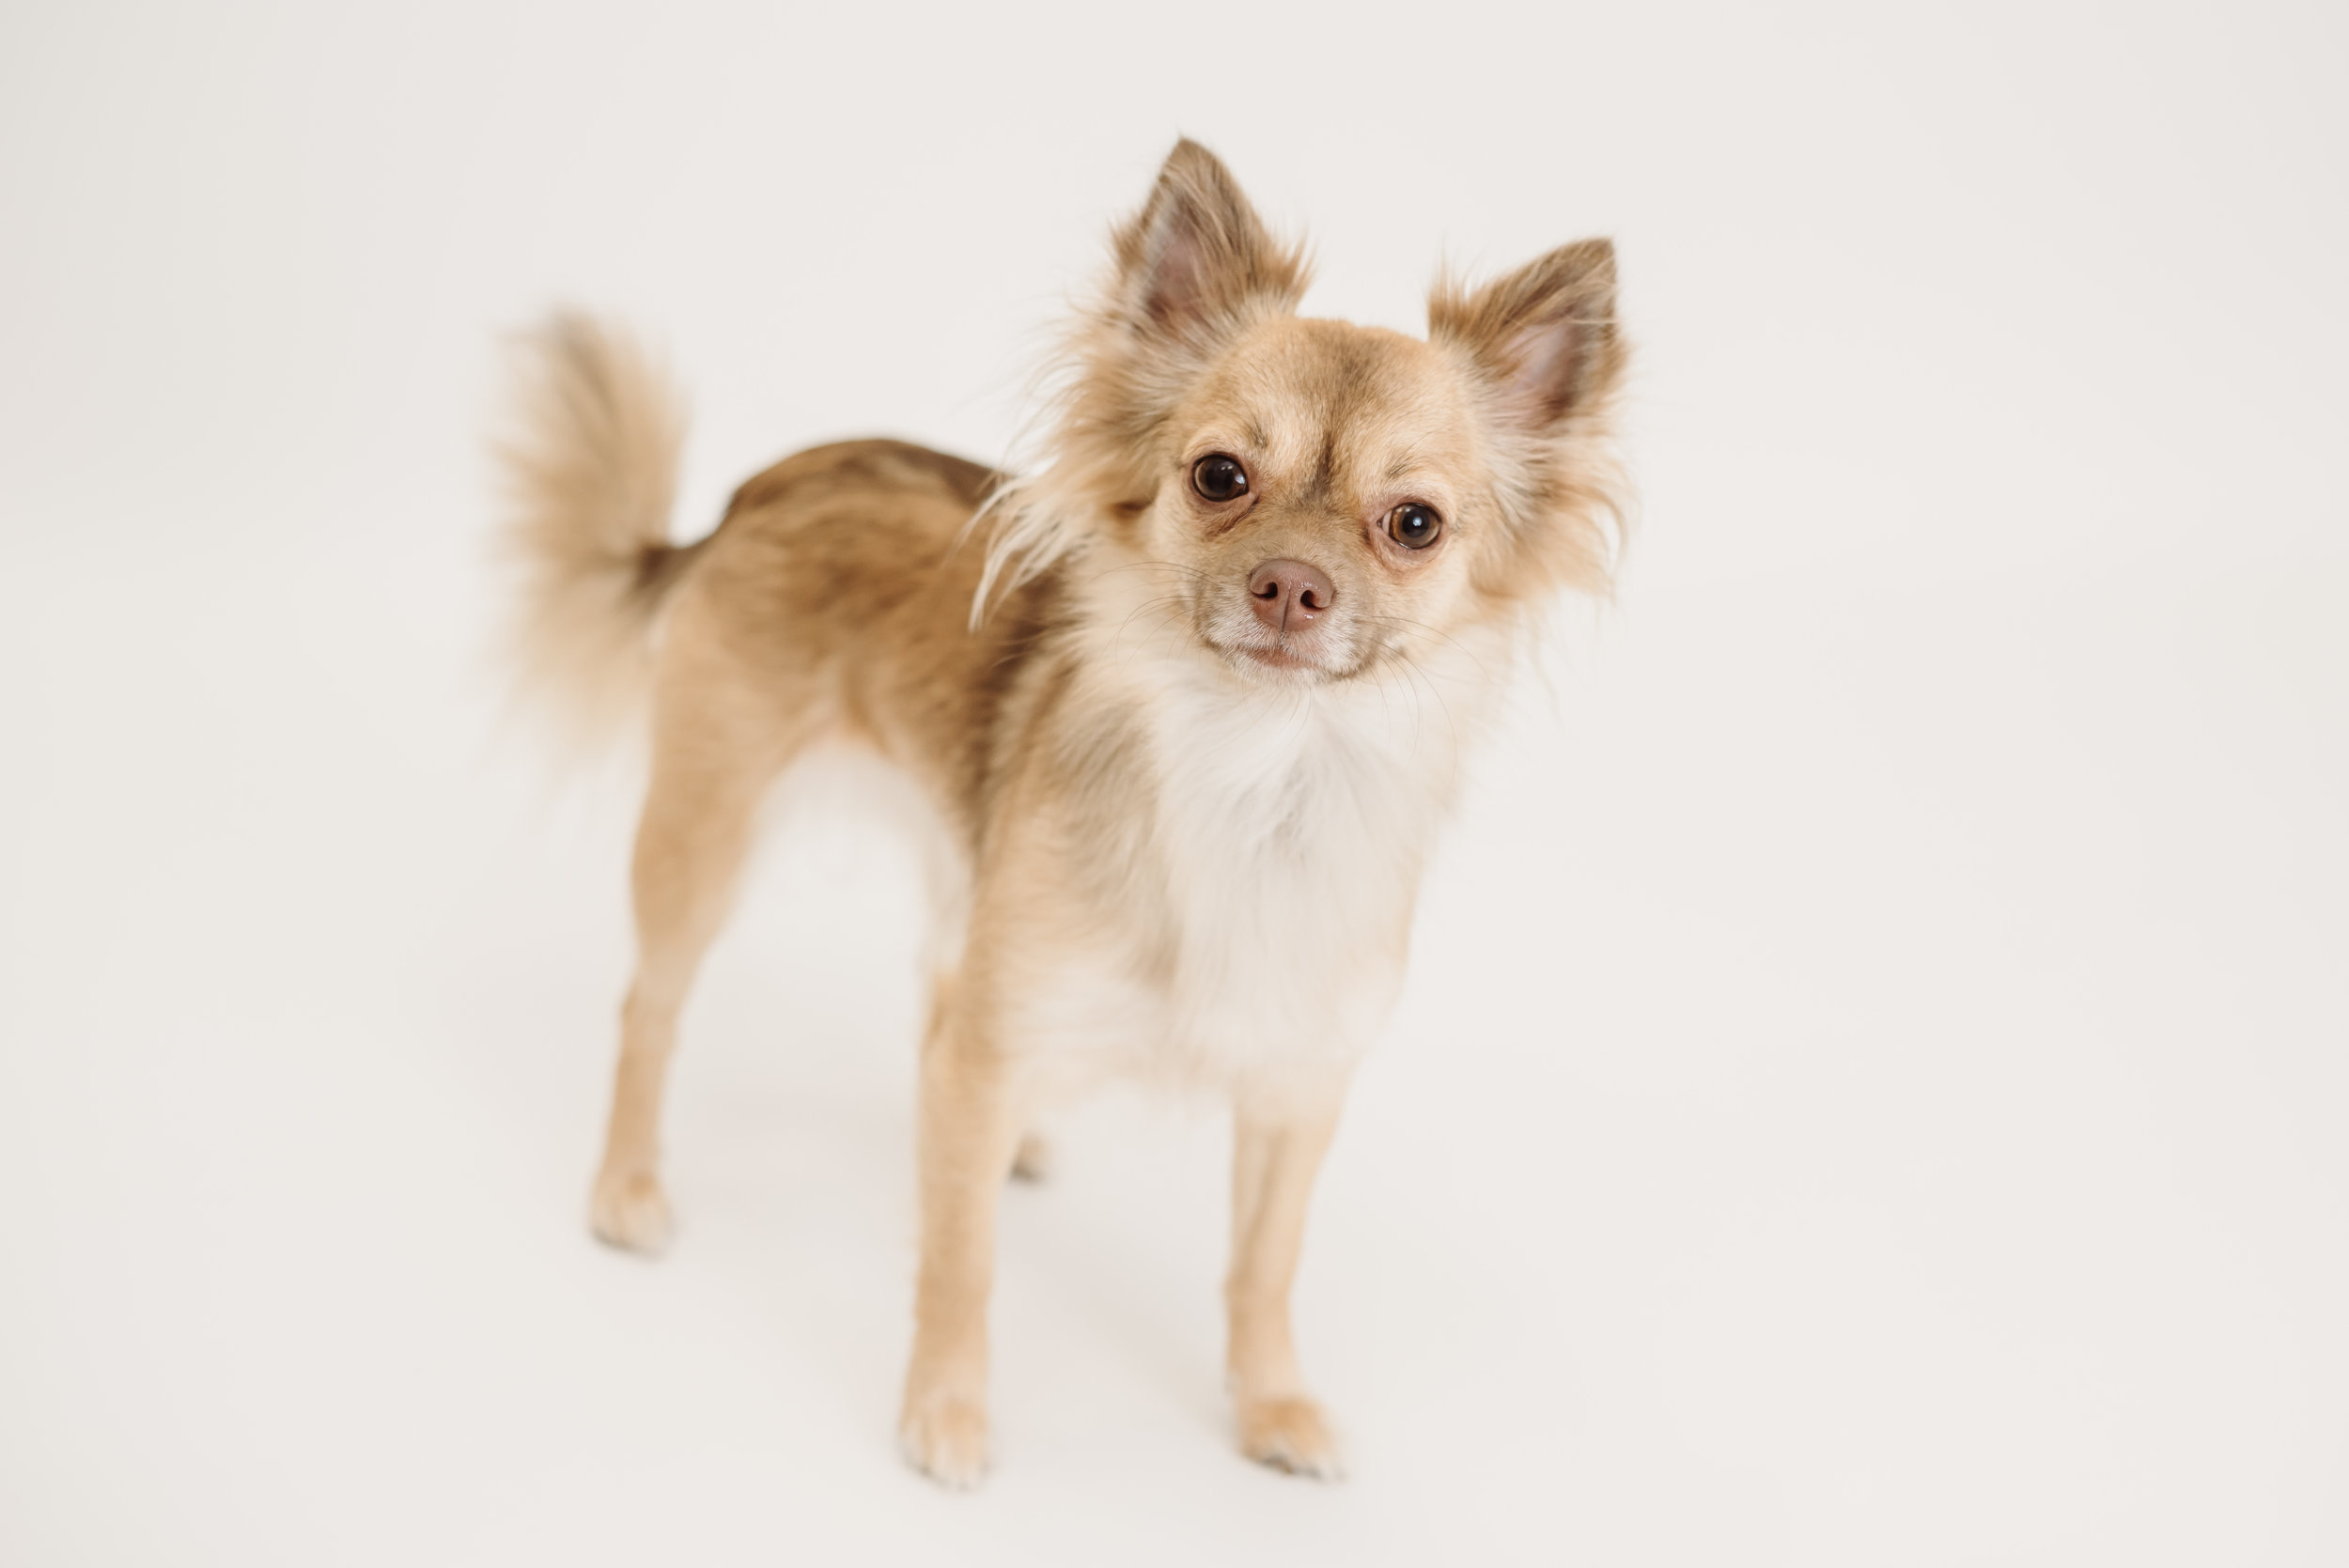 Chihuahua photo shoot - lancashire